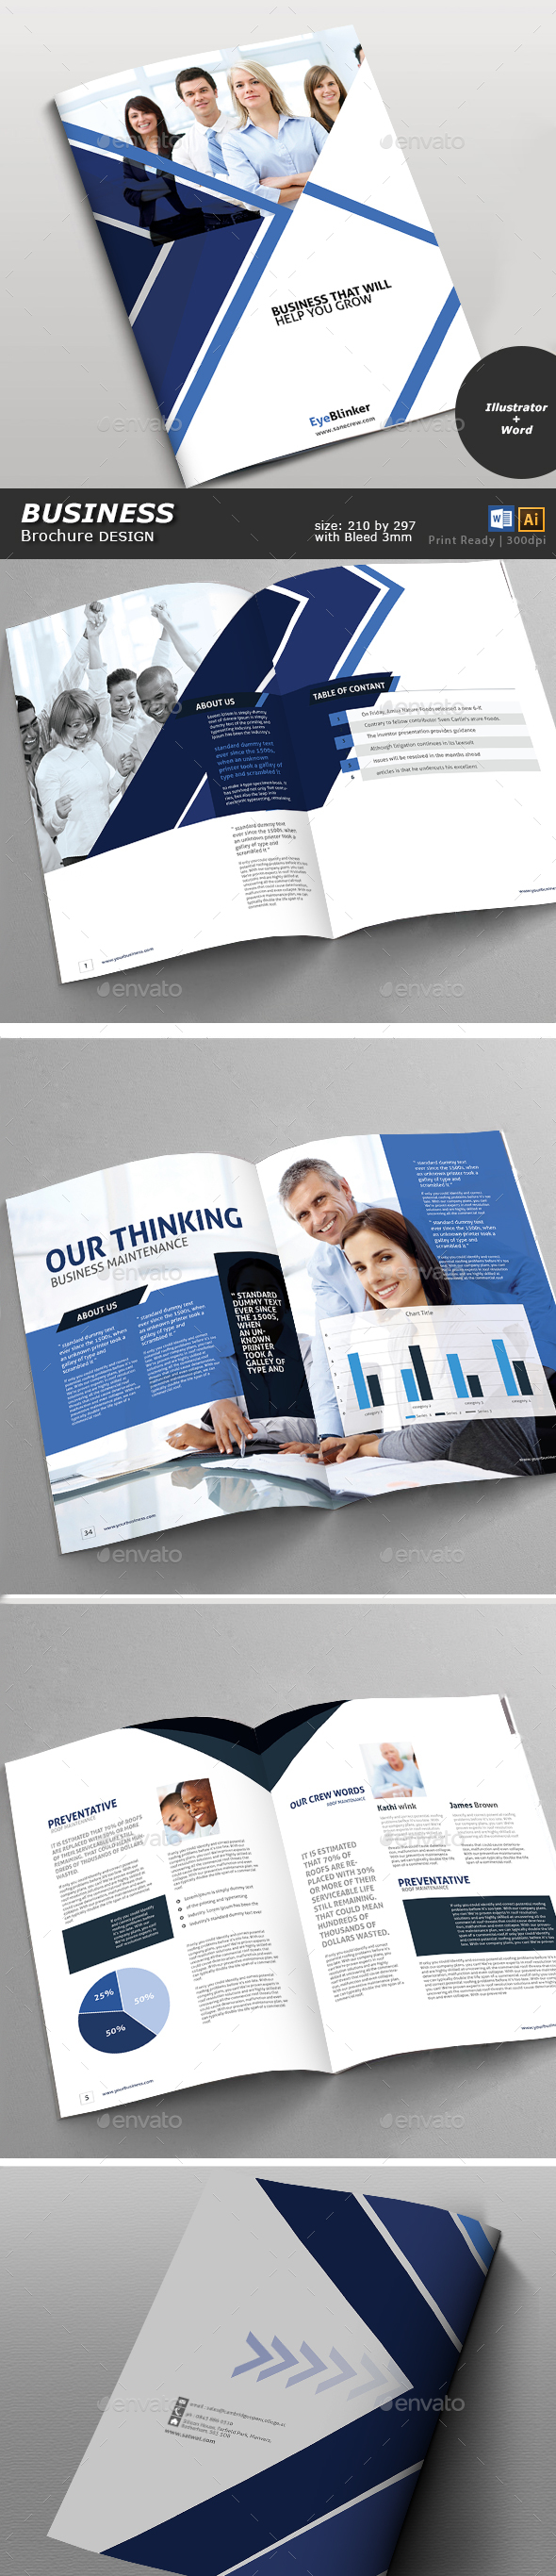 GraphicRiver Business Brochure 20670166